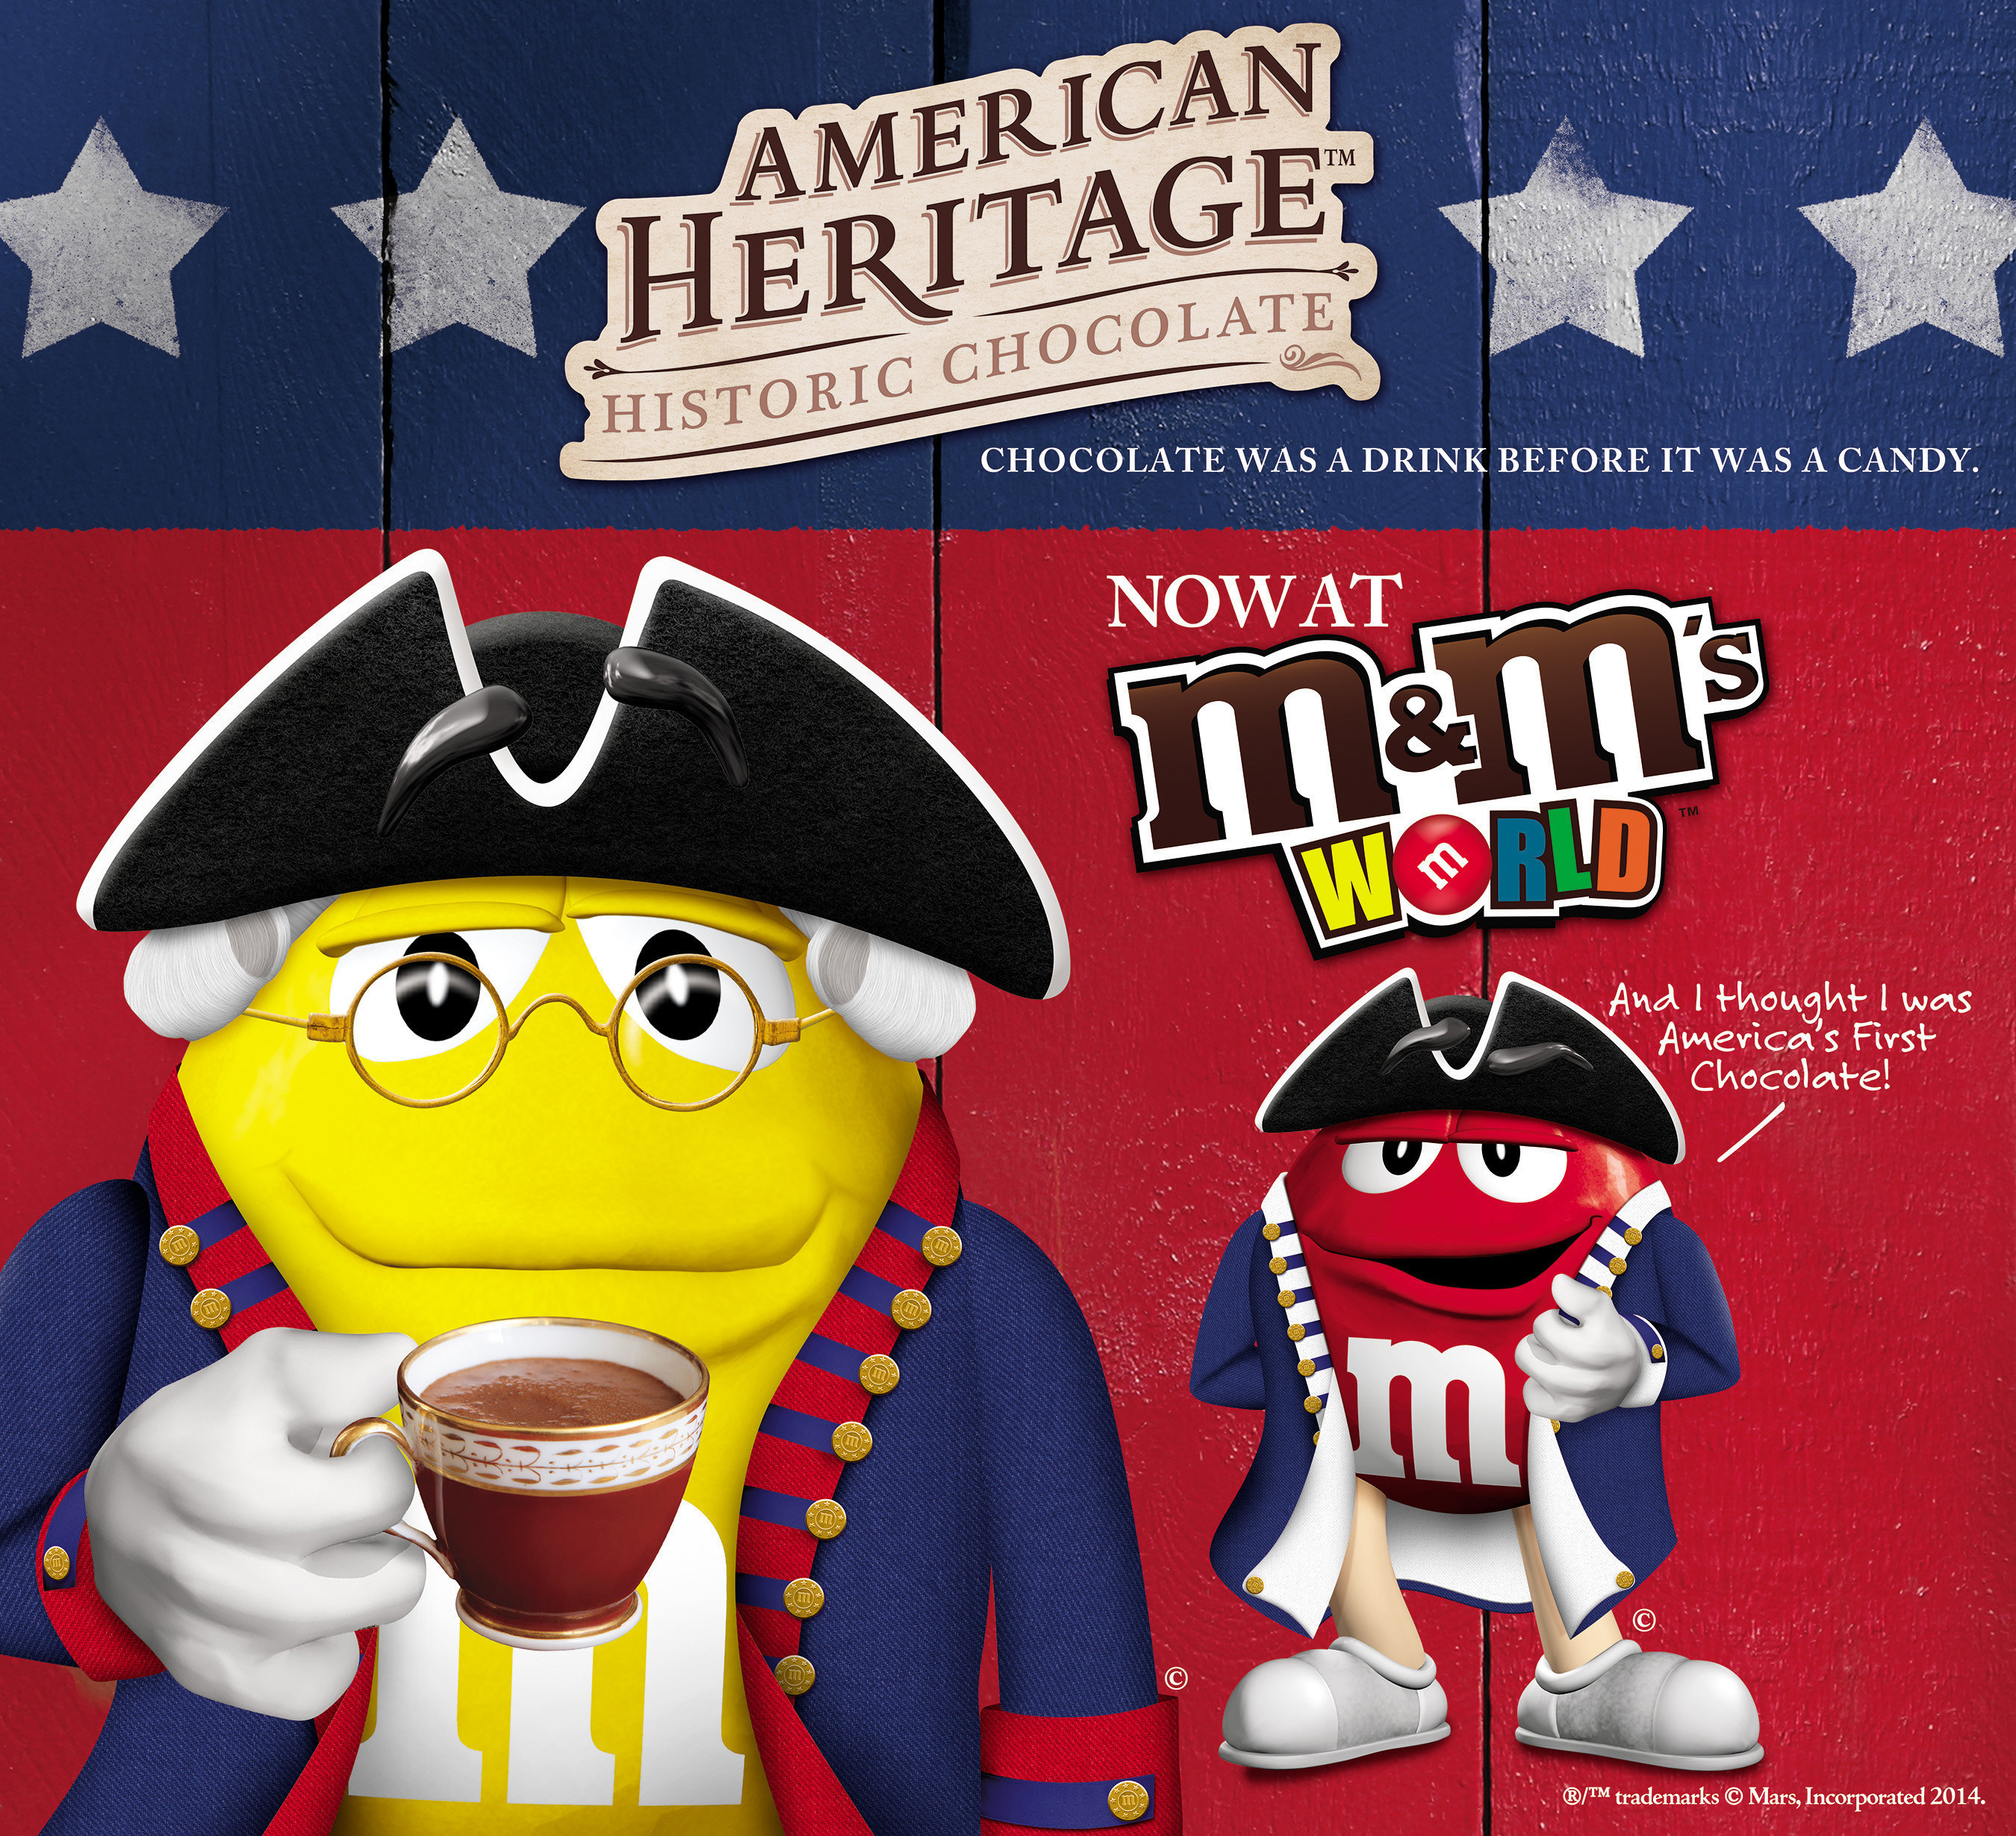 Times Square just got sweeter with the addition of American Heritage(TM) Chocolate at M&M'S World(R)